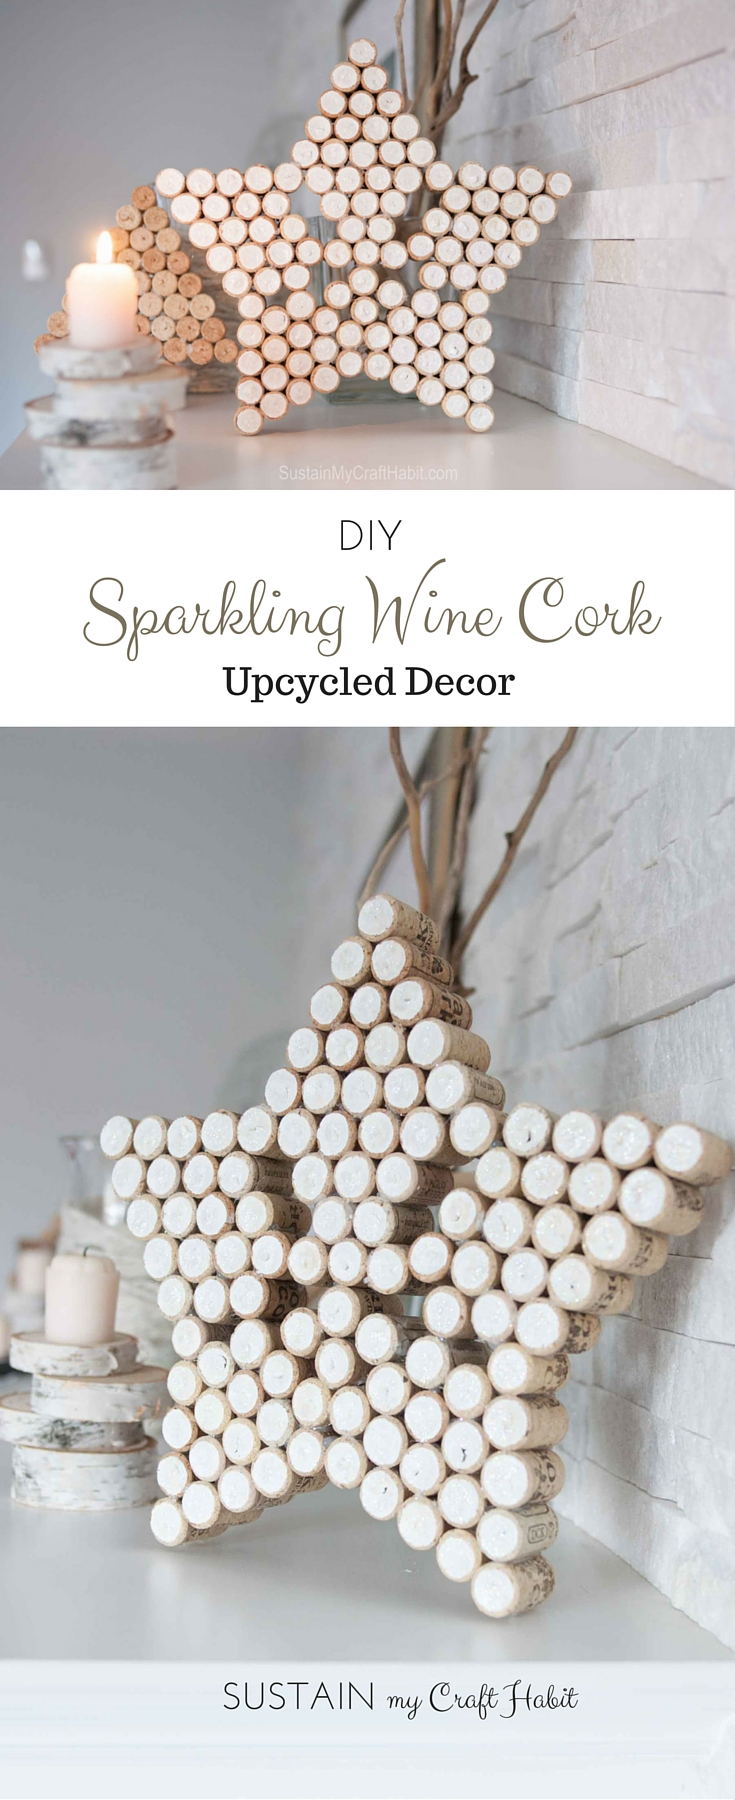 Wine cork crafts! How to make a sparkling star with wine corks. Add a little paint and glitter for a beautiful Christmas or year-round decor. Fun #winecorkcrafts idea! Elegant #crafts with wine corks.